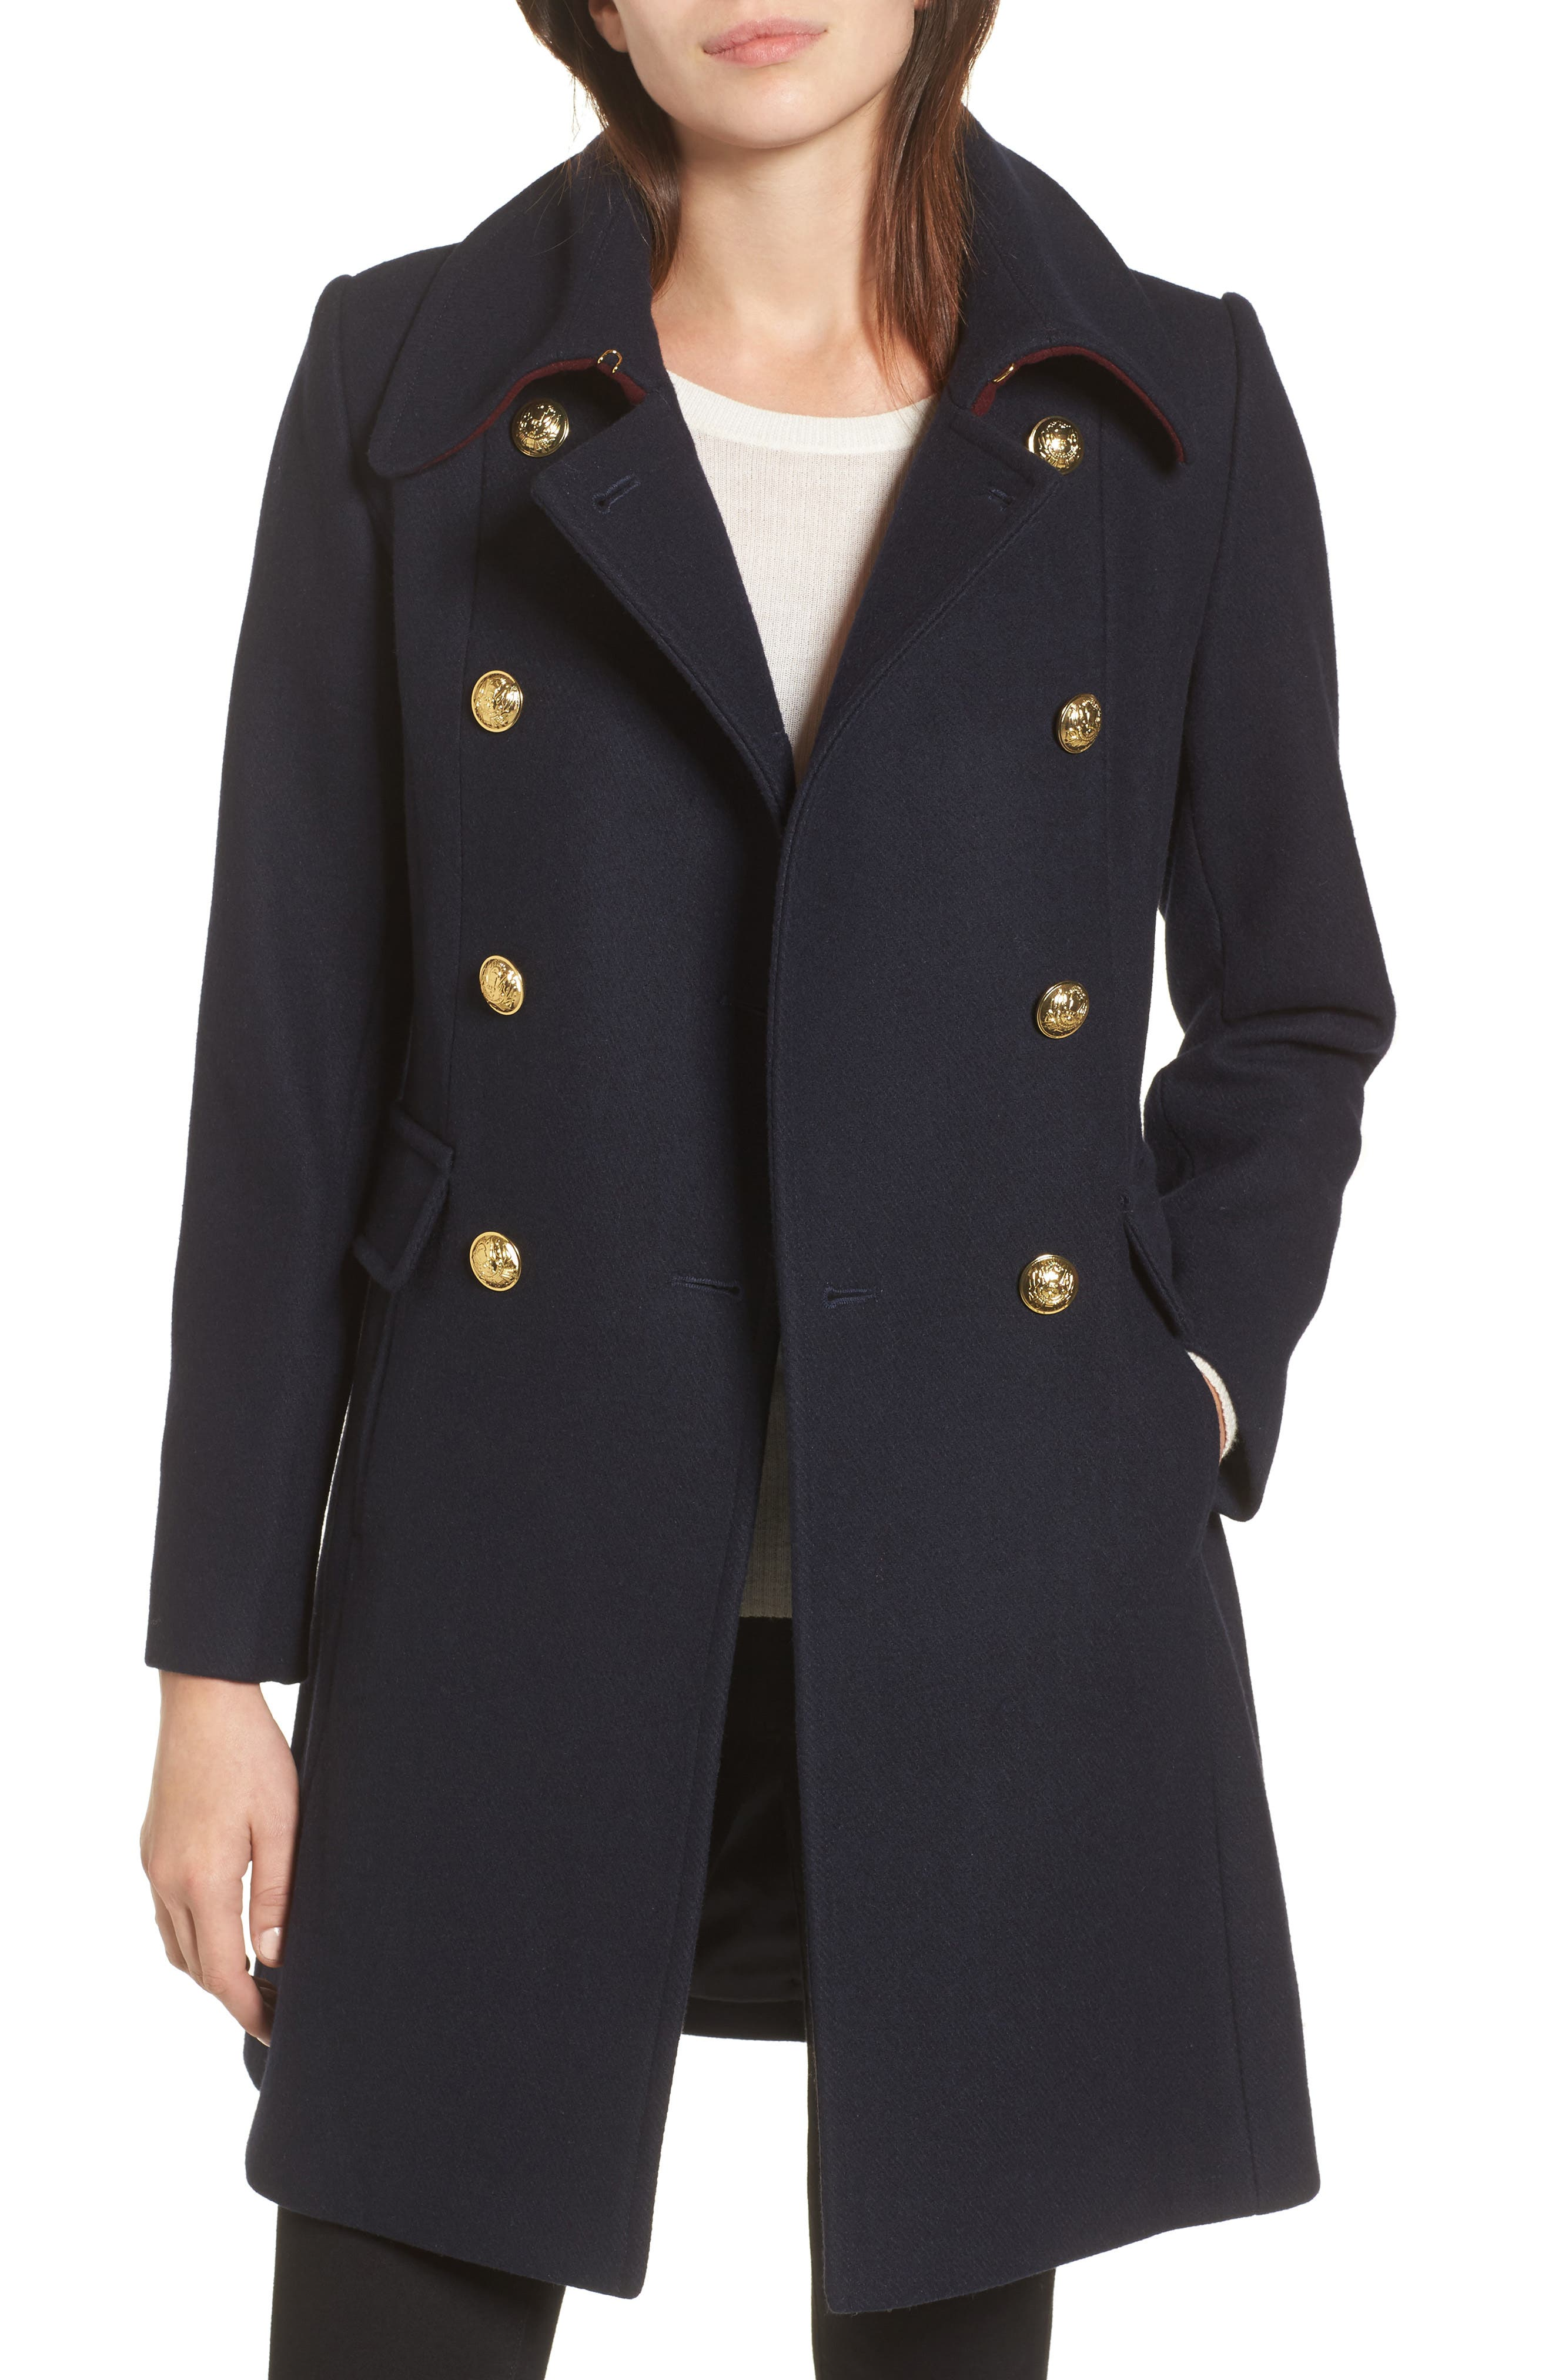 Main Image - Trina Turk Caitlin Double Breasted Coat